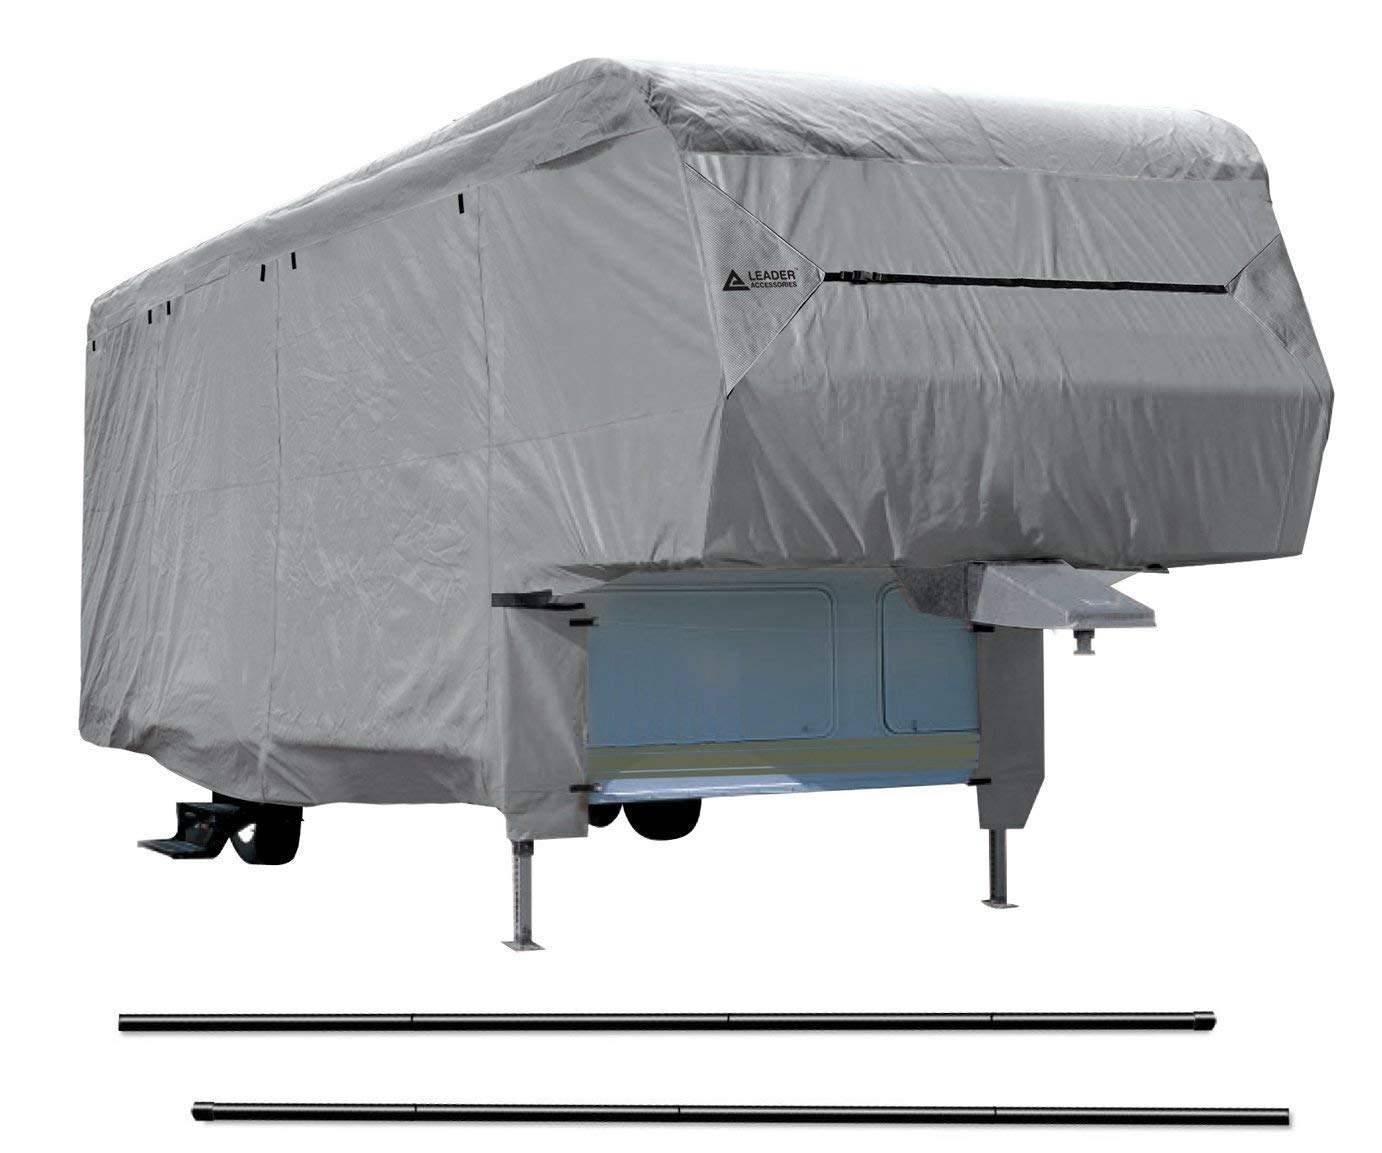 Leader Accessories New Easy Setup 5th Wheel RV Cover Fits 26'-29' Motorhome RV Outdoor Protect Camper Cover by Leader Accessories